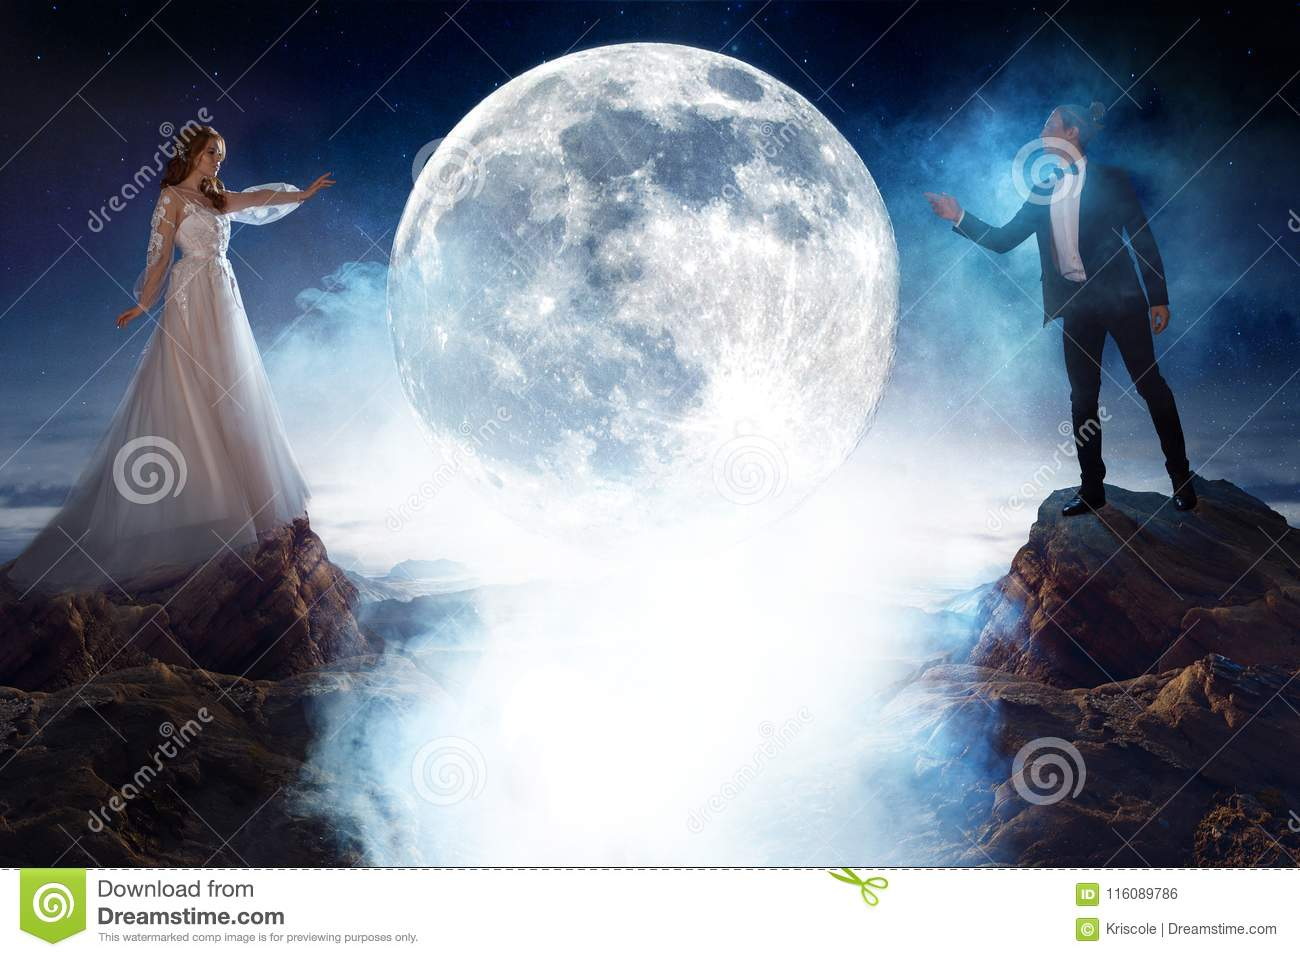 Mysterious and romantic meeting, bride and groom under the moon. Man and woman pulling each other`s hands. Mixed media